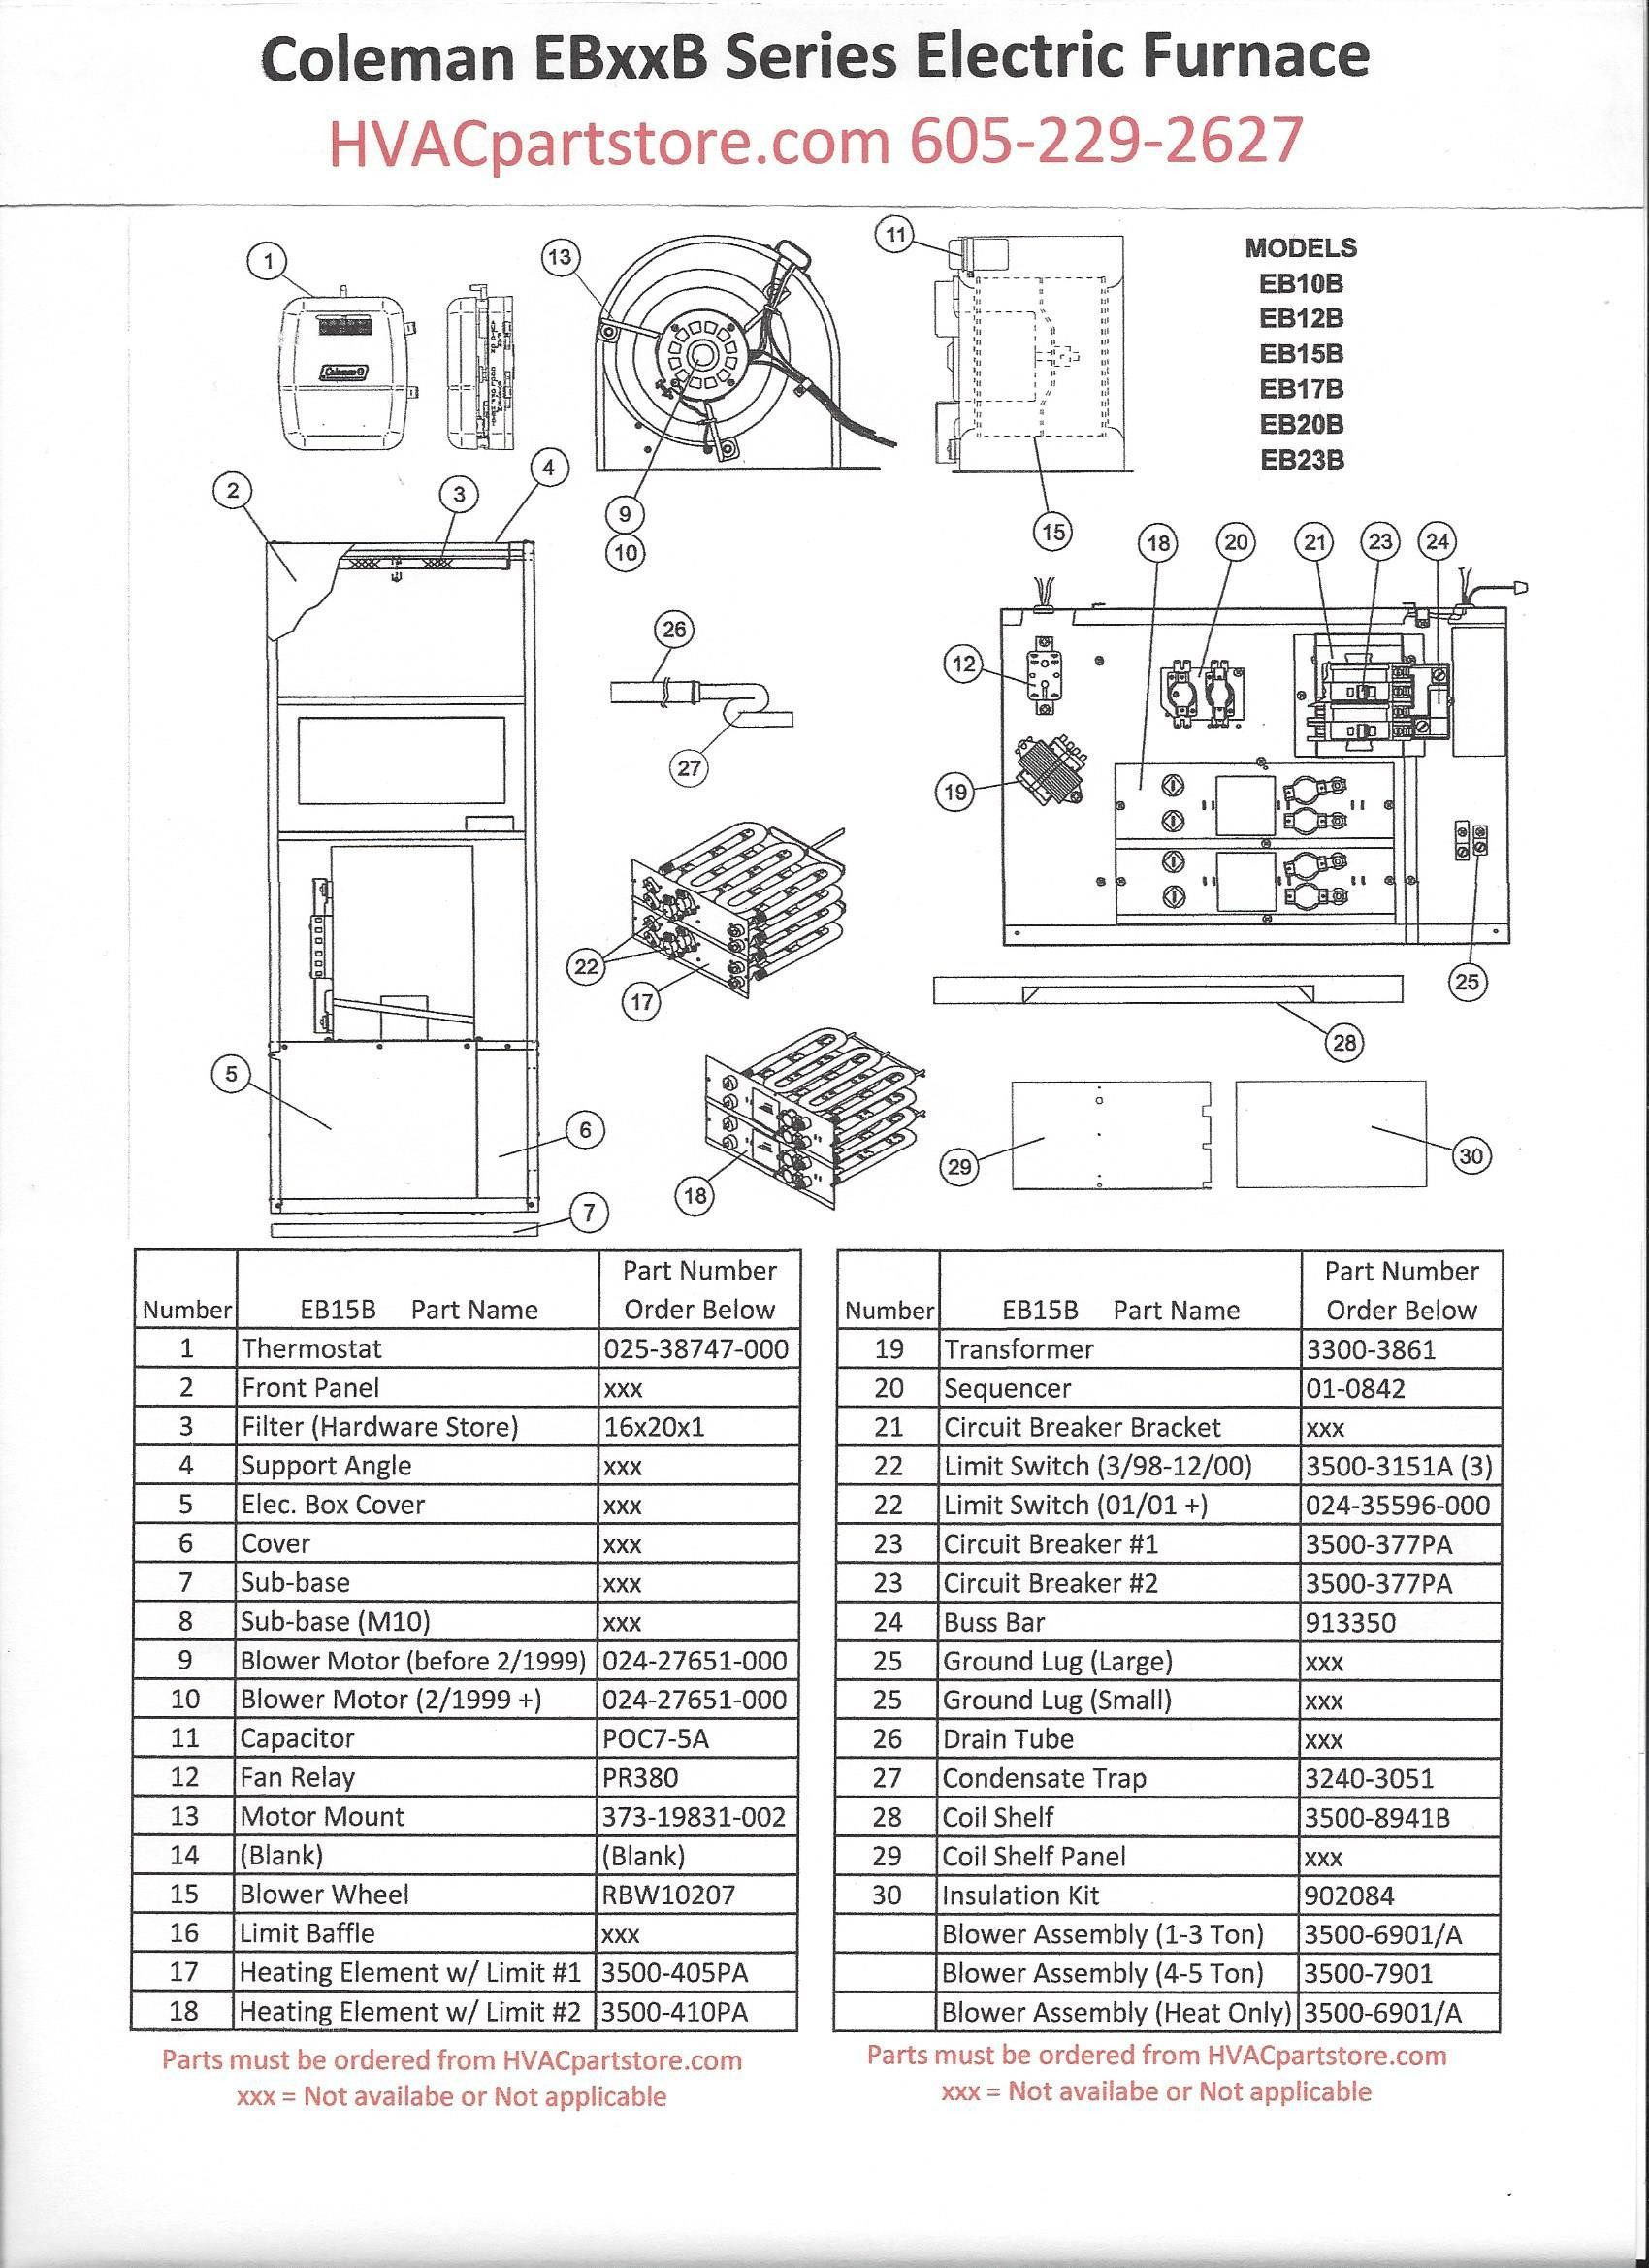 Coleman Furnace Wiring Diagram Wiring Diagram for the Coleman 25 Kw Electric Furnace Courtesy Of Coleman Furnace Wiring Diagram